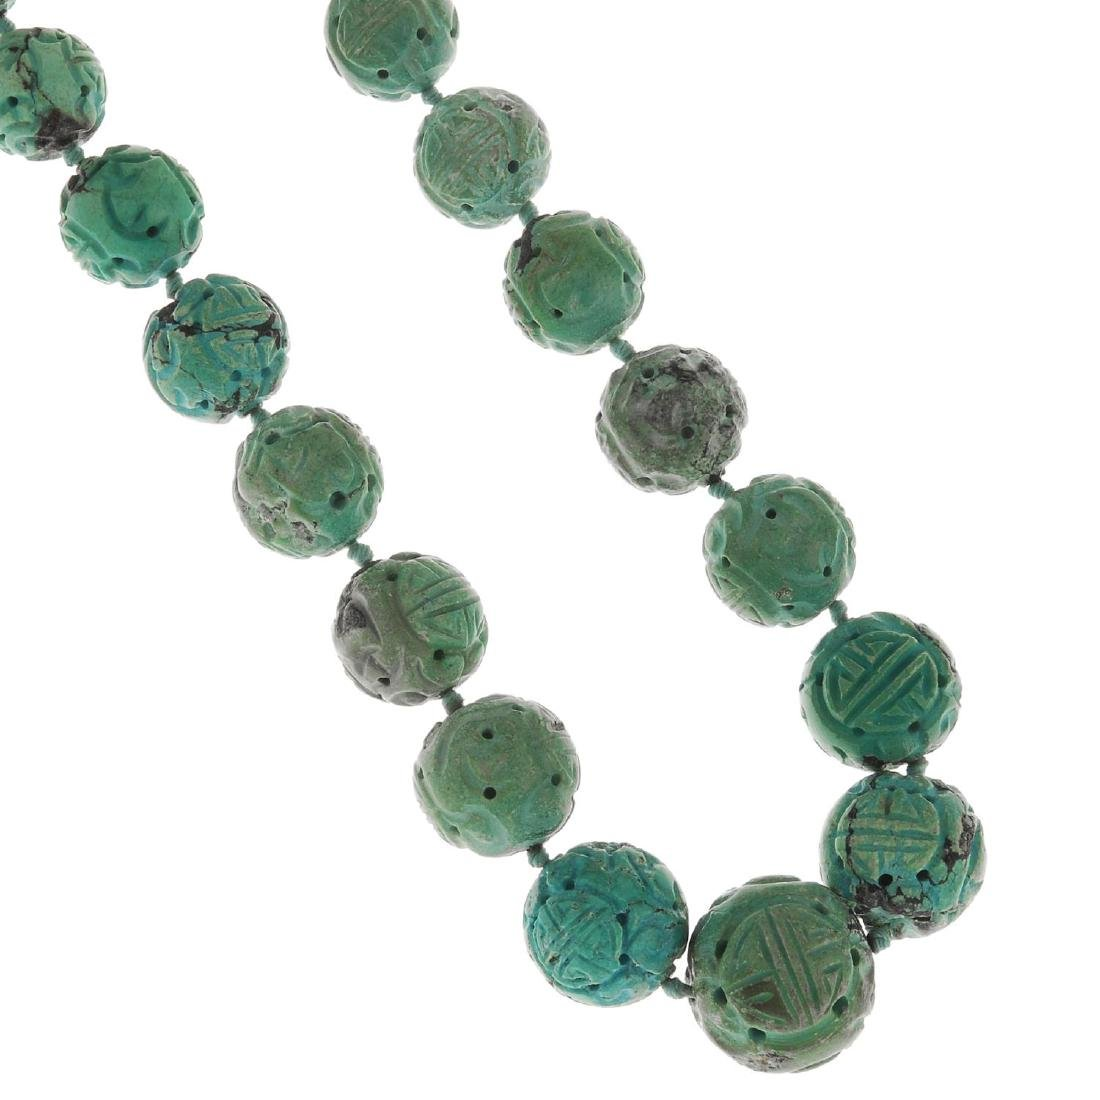 A Chinese Shou carved turquoise bead necklace.